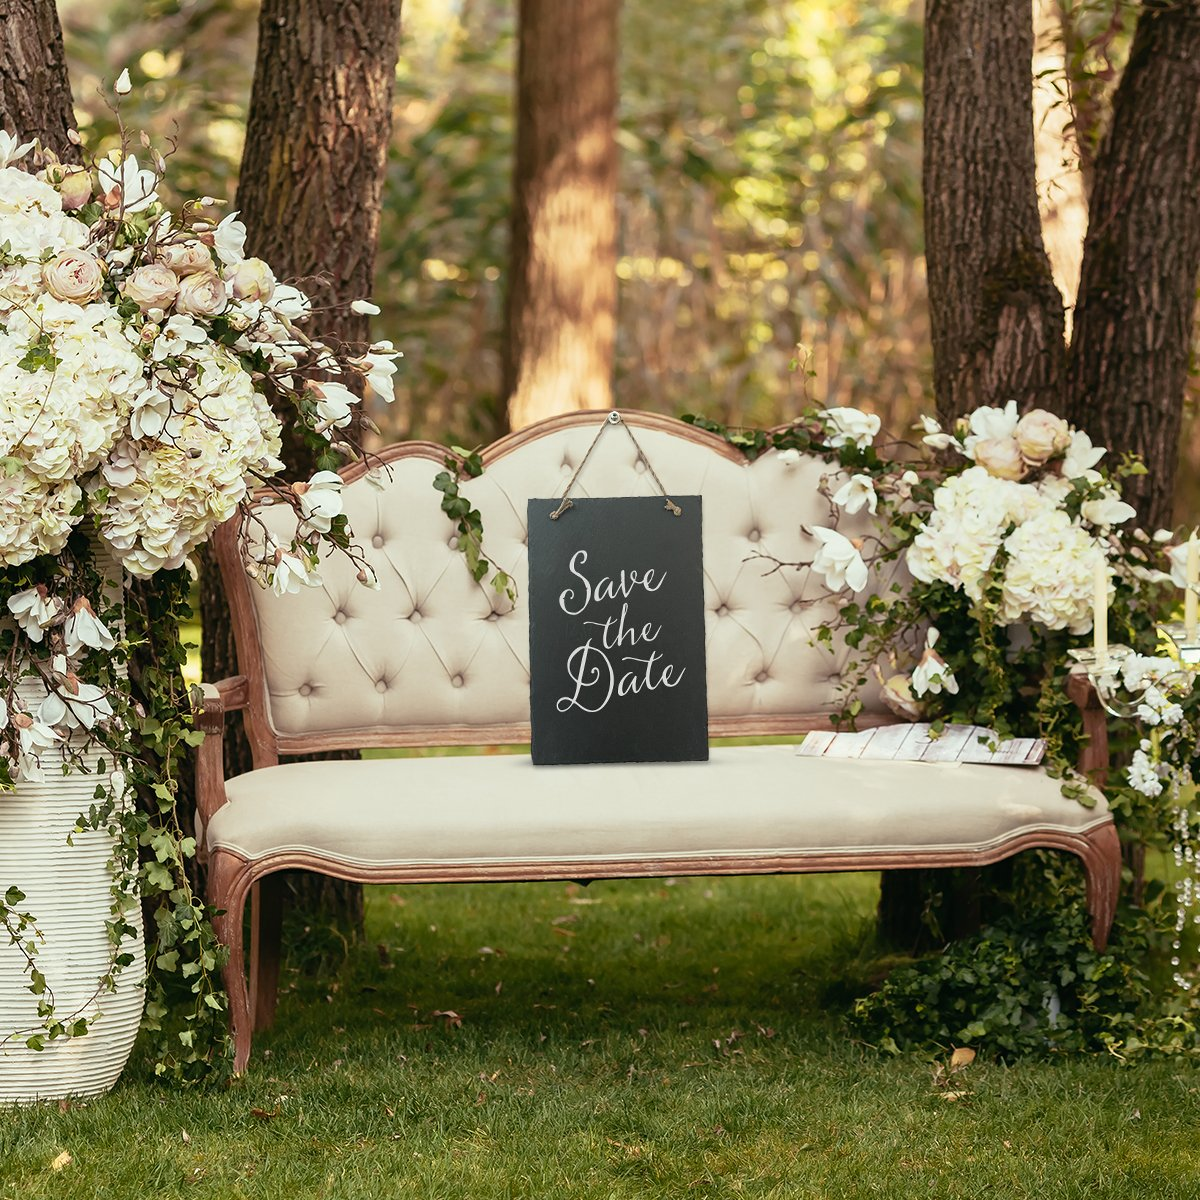 Vintage Frameless Slate Chalkboard Sign (8''x12'') - Decorative Hanging Chalk Board for Rustic Wedding Signs, Kitchen Pantry & Wall Decor by VersaChalk (Image #2)